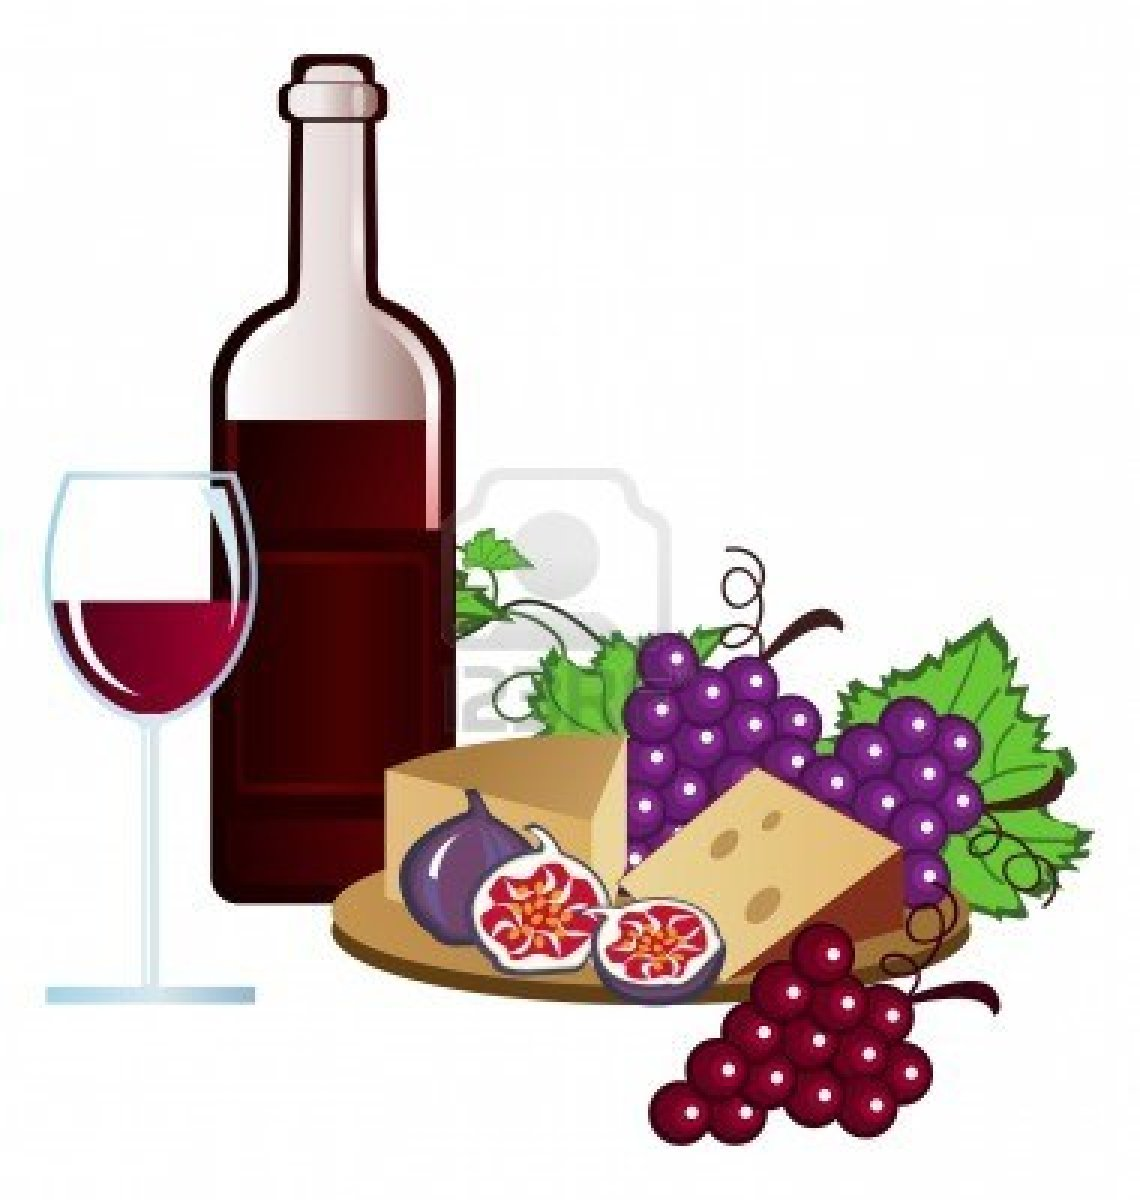 Wine And Cheese Clip Art Viewing Gallery-Wine And Cheese Clip Art Viewing Gallery-4